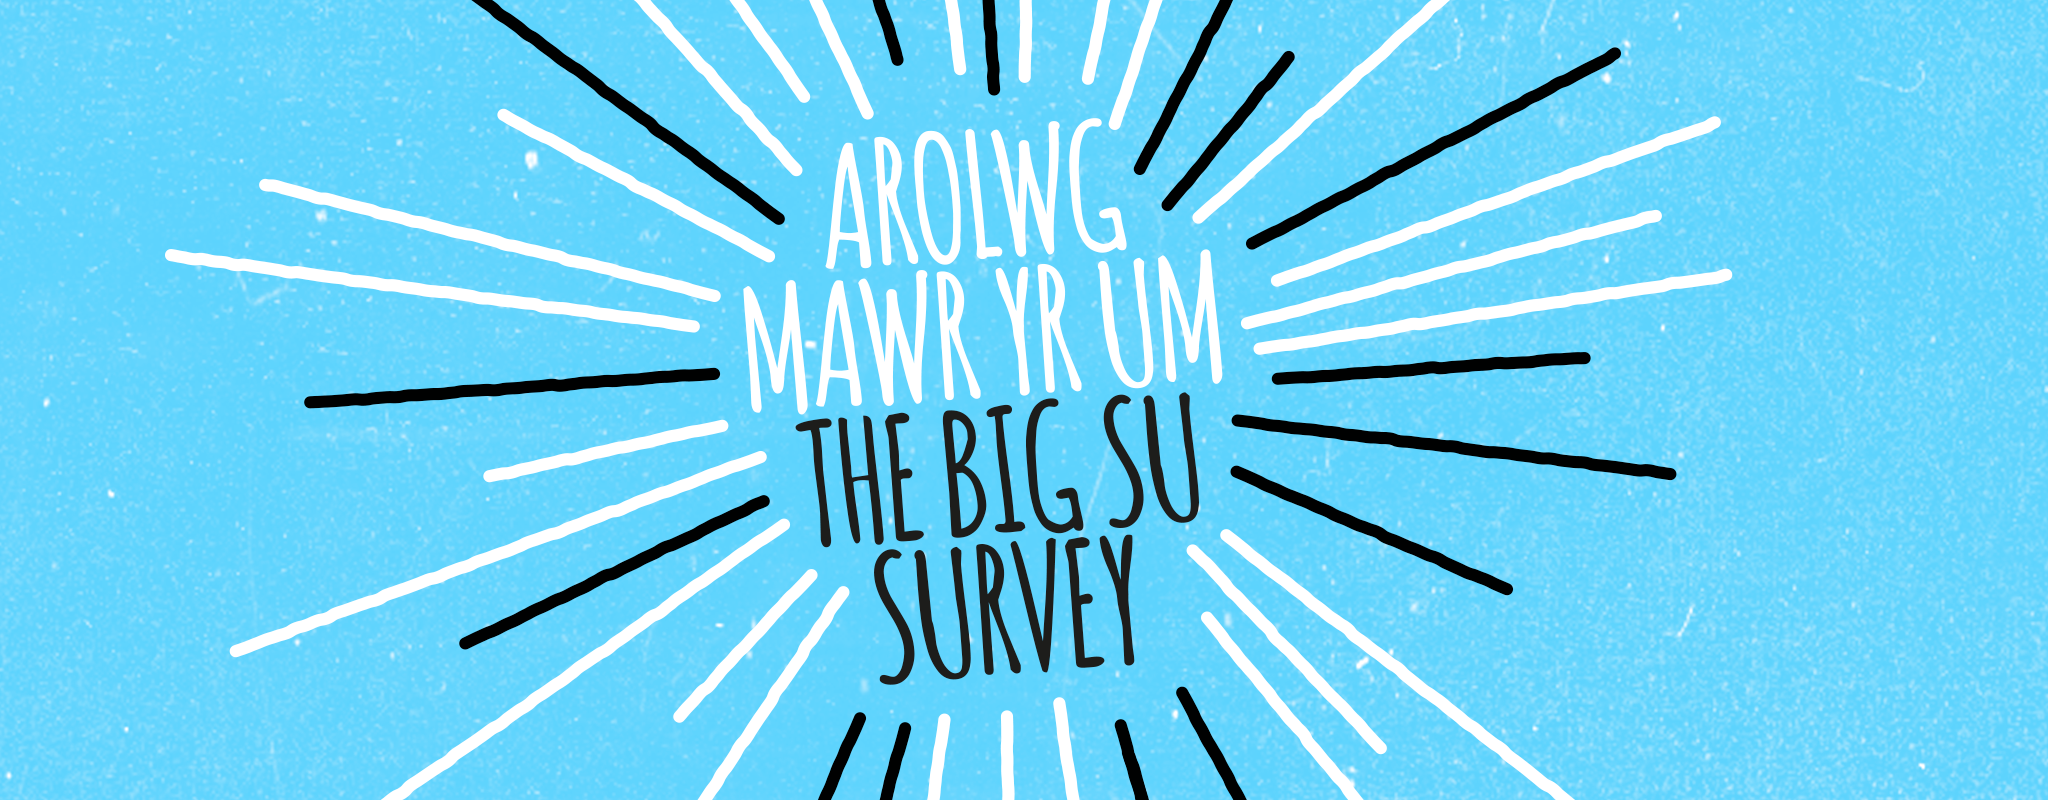 Big su survey banner blue